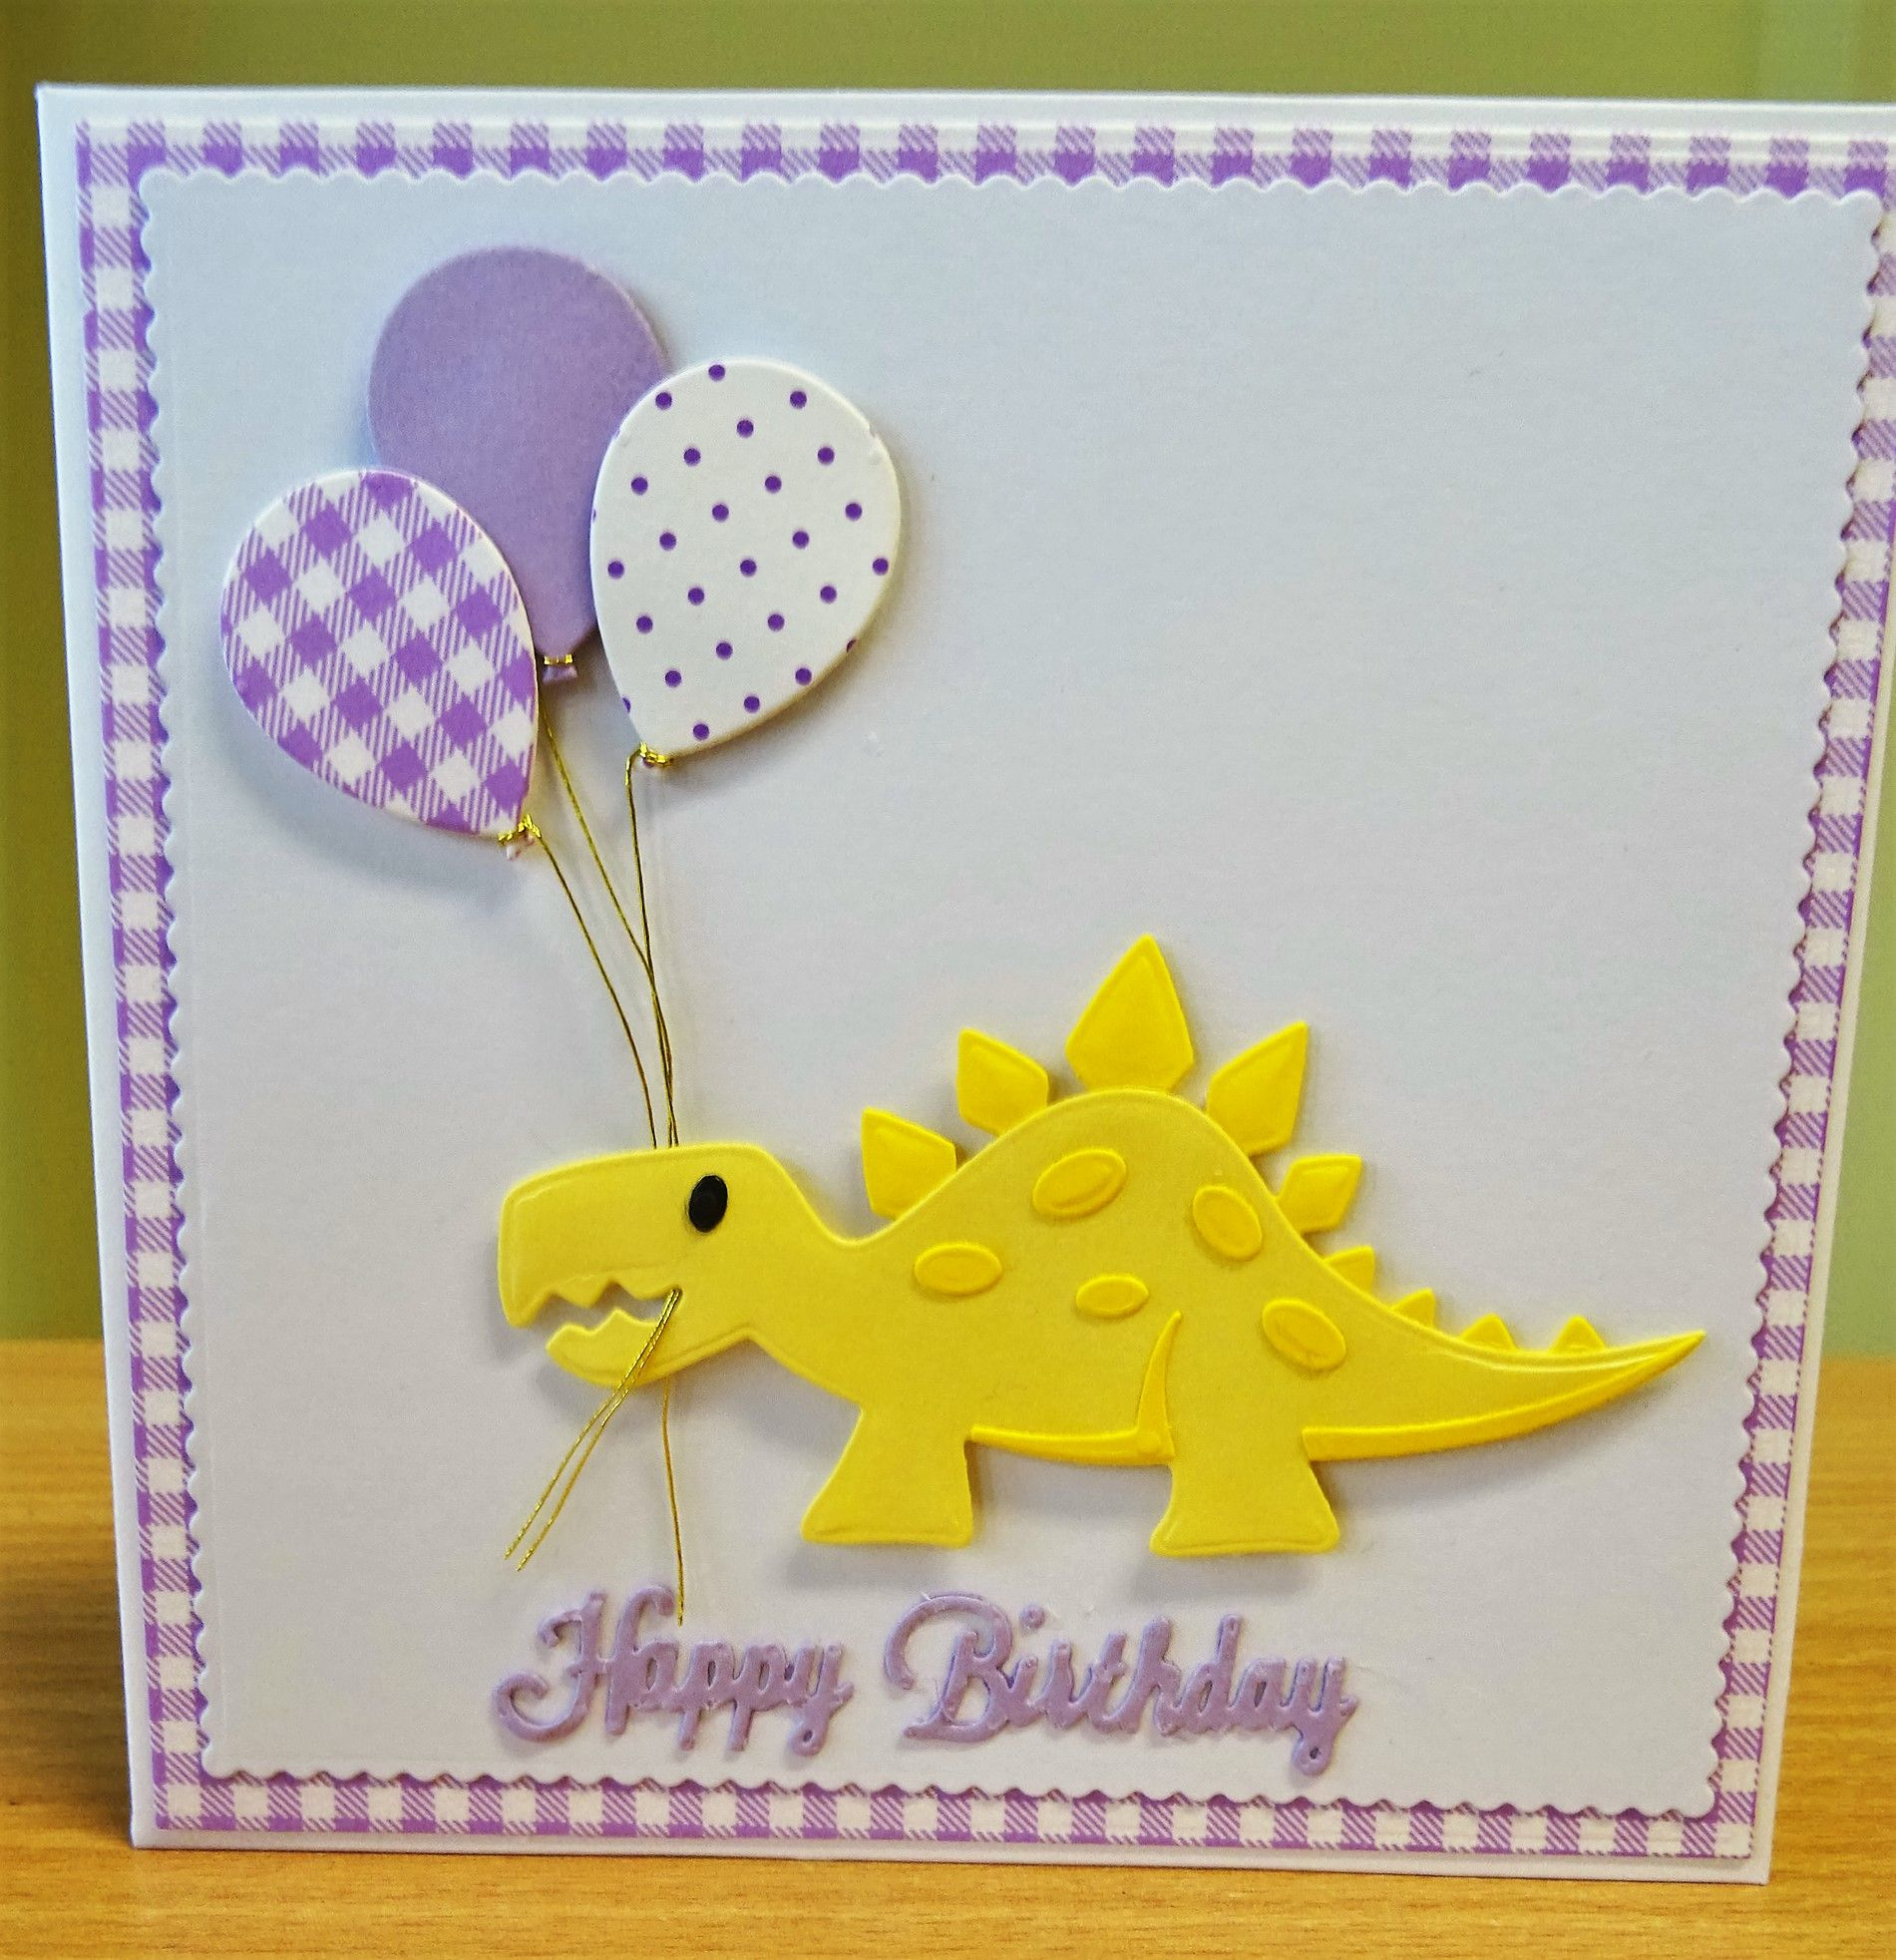 Handmade Birthday Card Marianne Collectables Dinosaur Die 2 For More Of My Cards Please Vi Birthday Card Sayings Girl Birthday Cards Marianne Design Cards